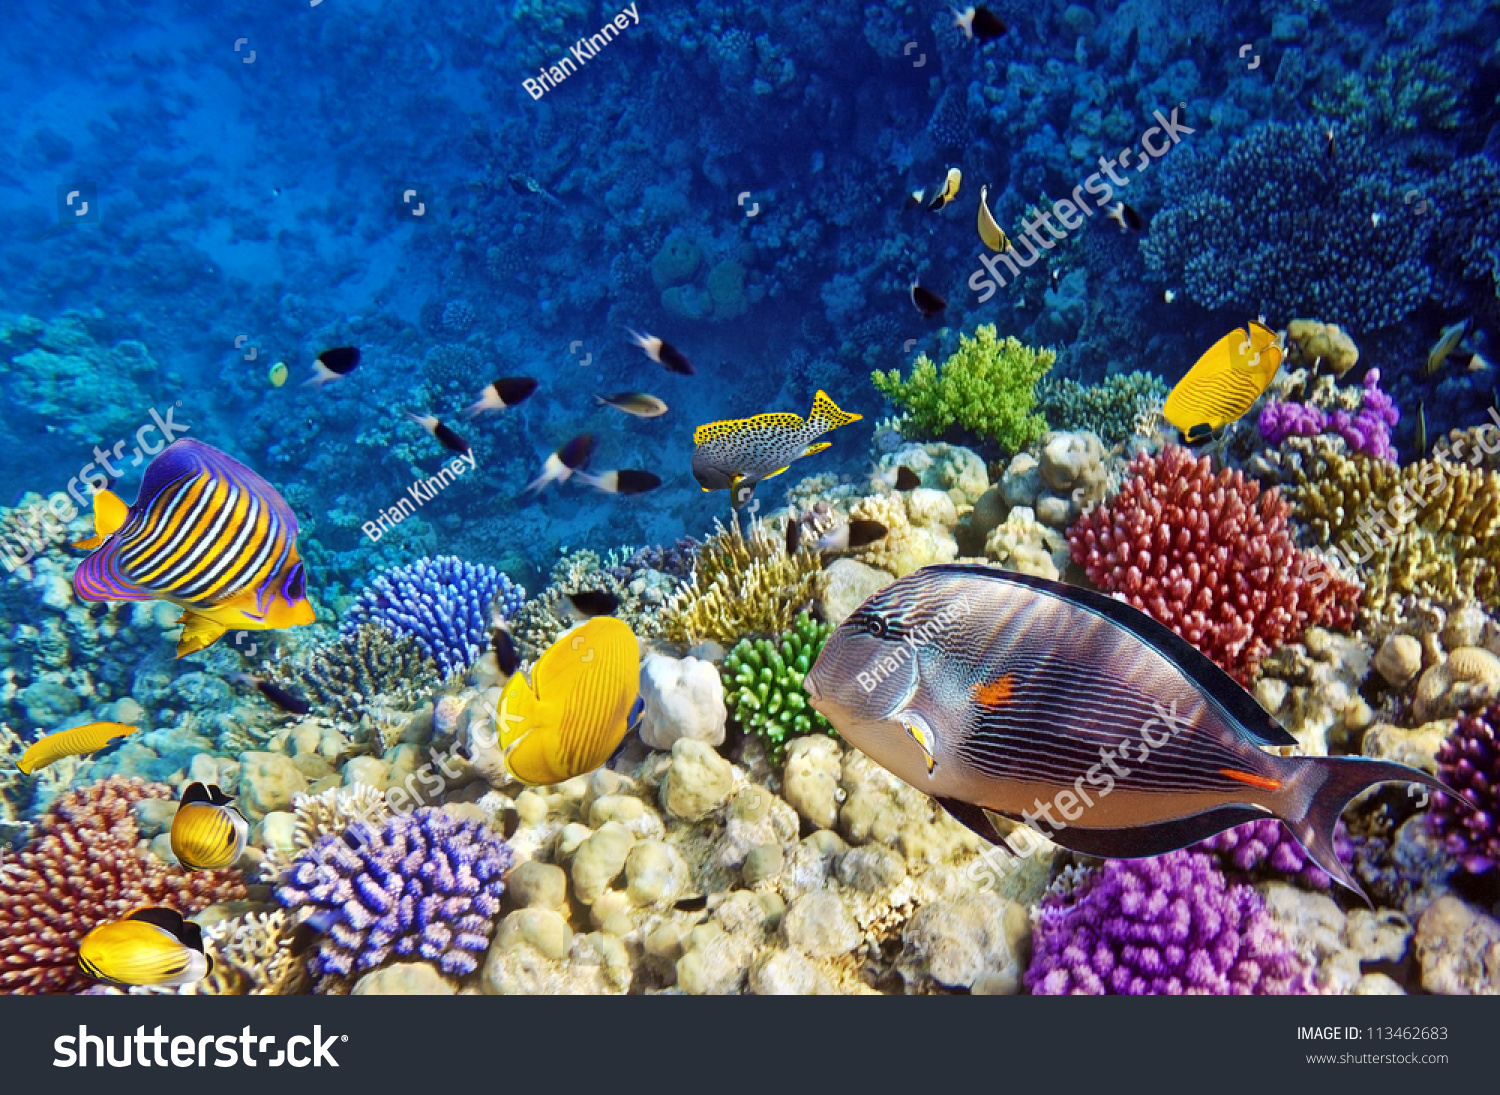 Coral fish red seaegypt stock photo 113462683 shutterstock for Red sea fish